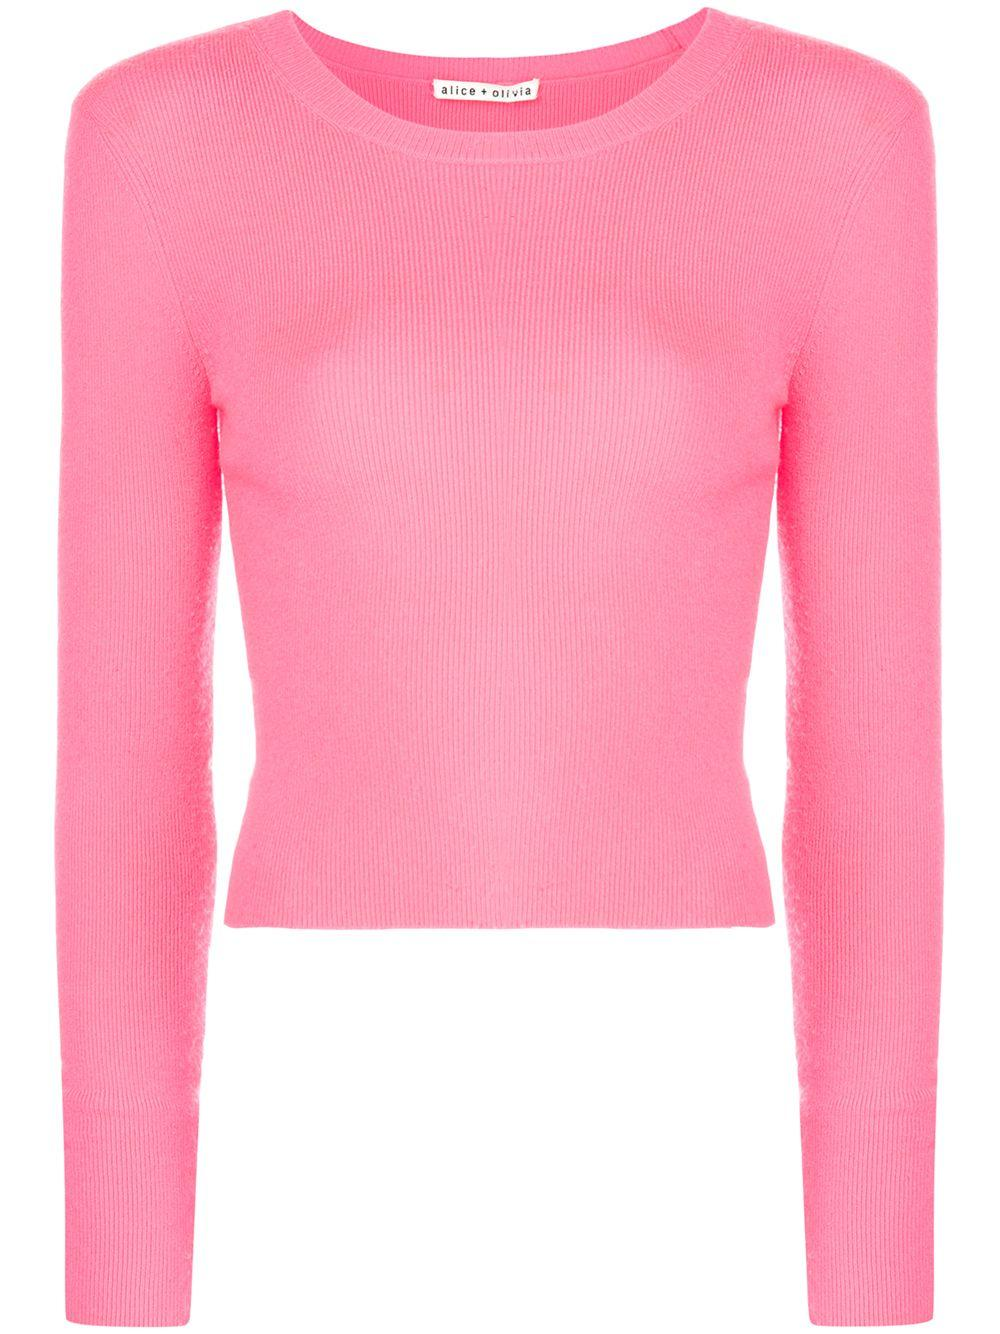 Ciara Long Sleeve Cropped Pullover Item # CC911S15704